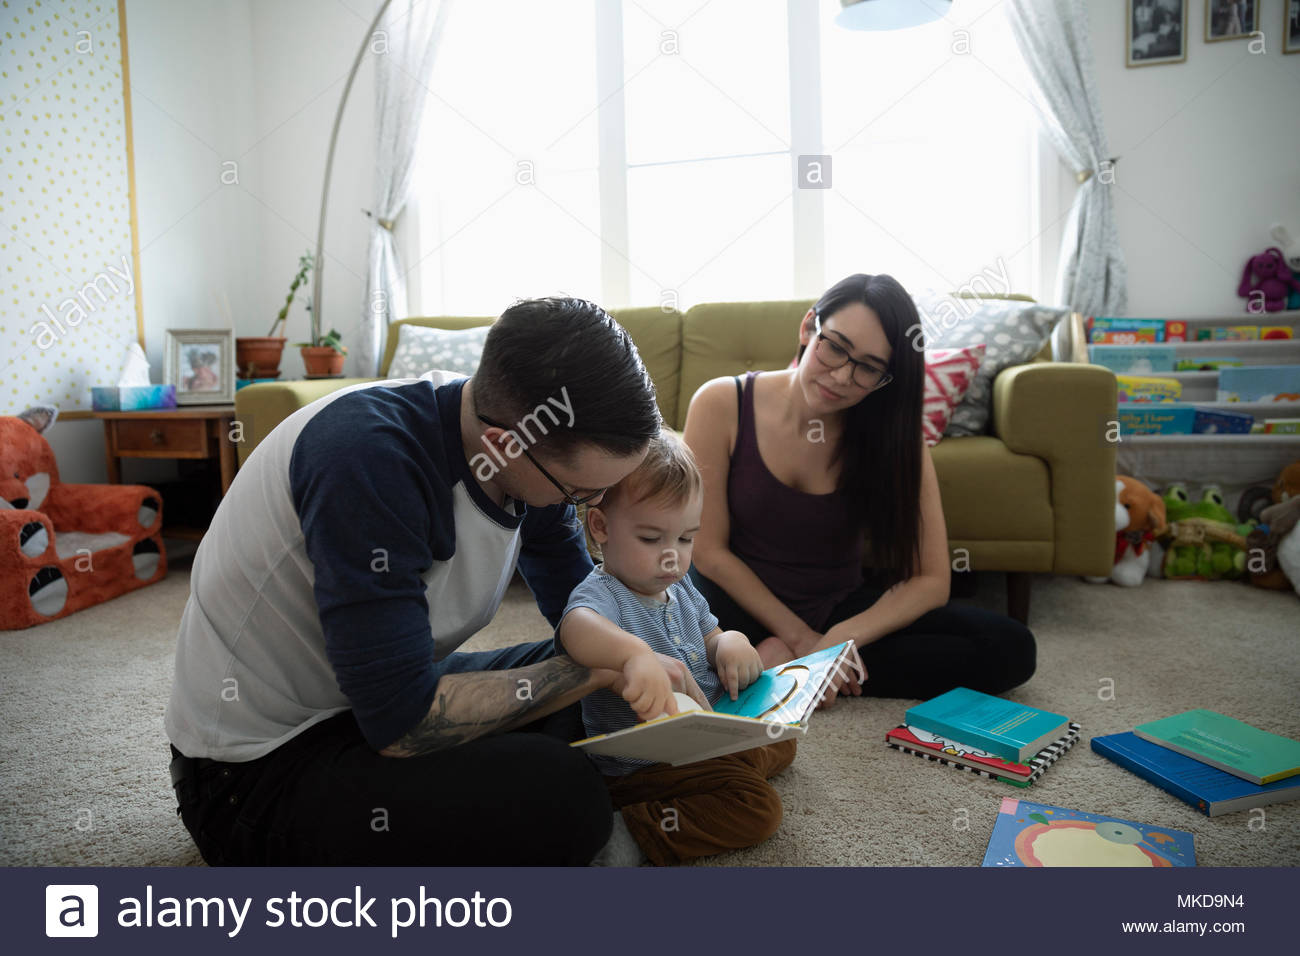 Parents reading story book to baby son in living room Stock Photo